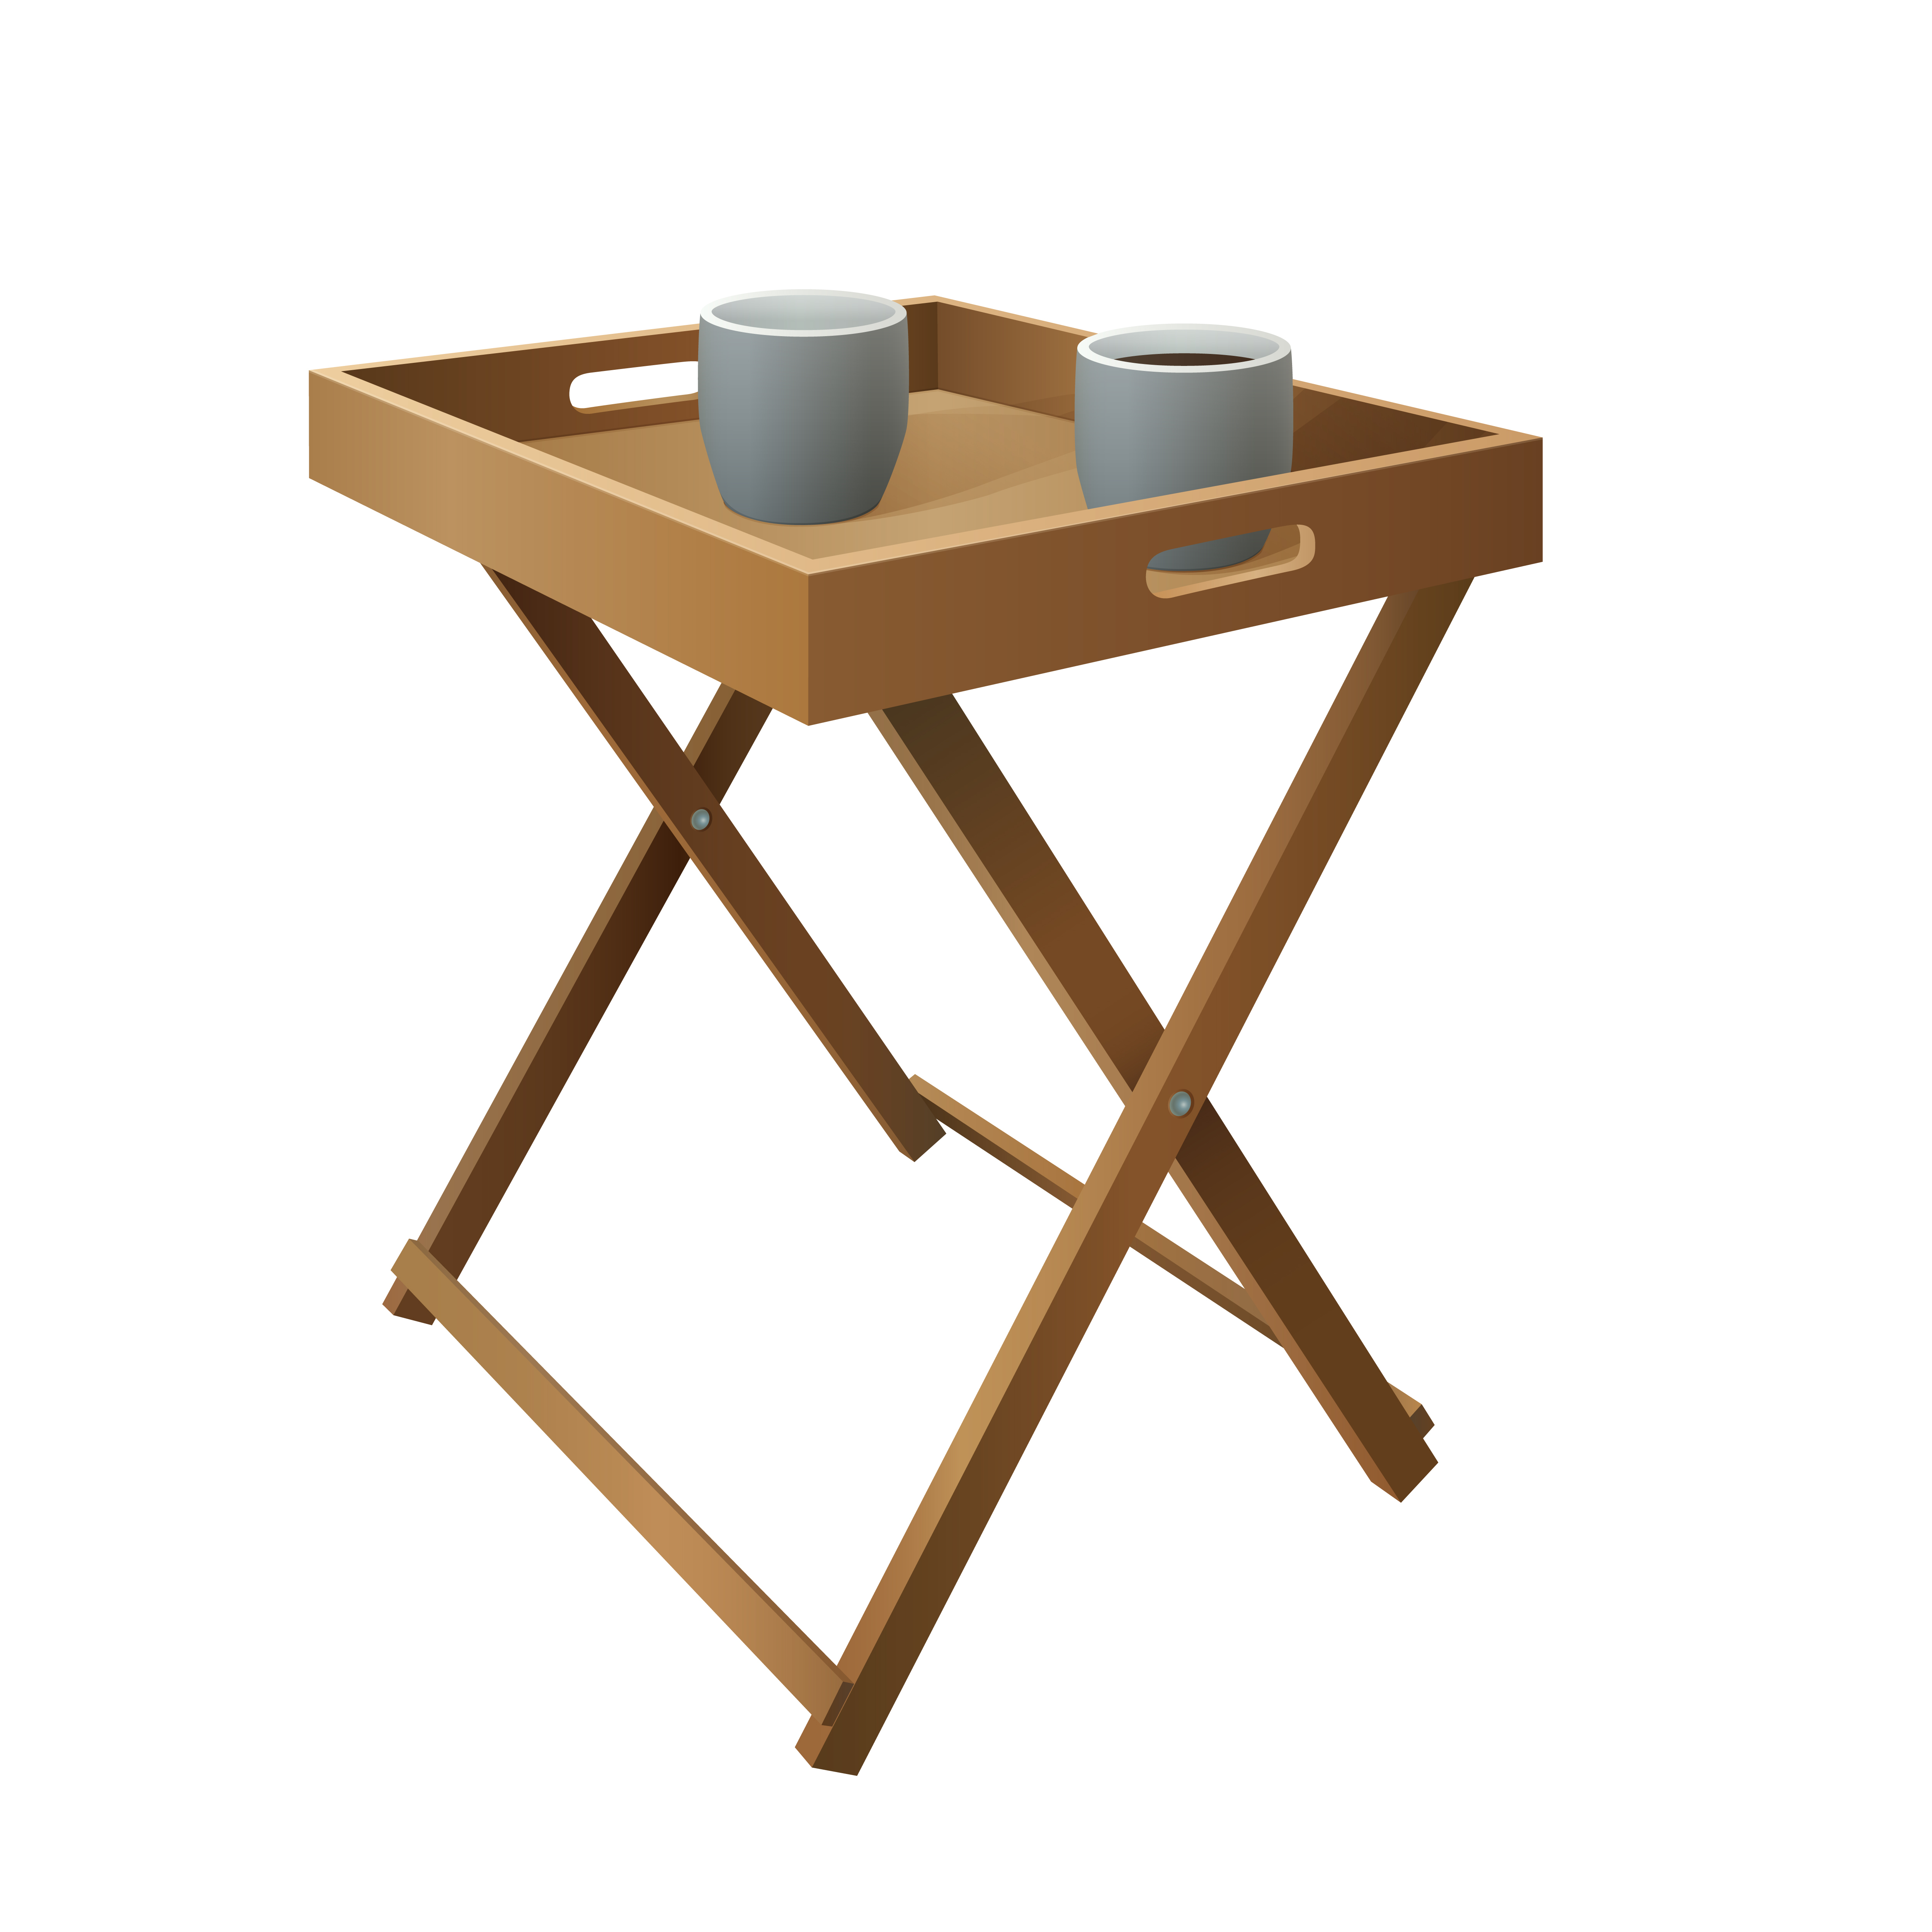 Things to consider when buying a side table with a pull out tray